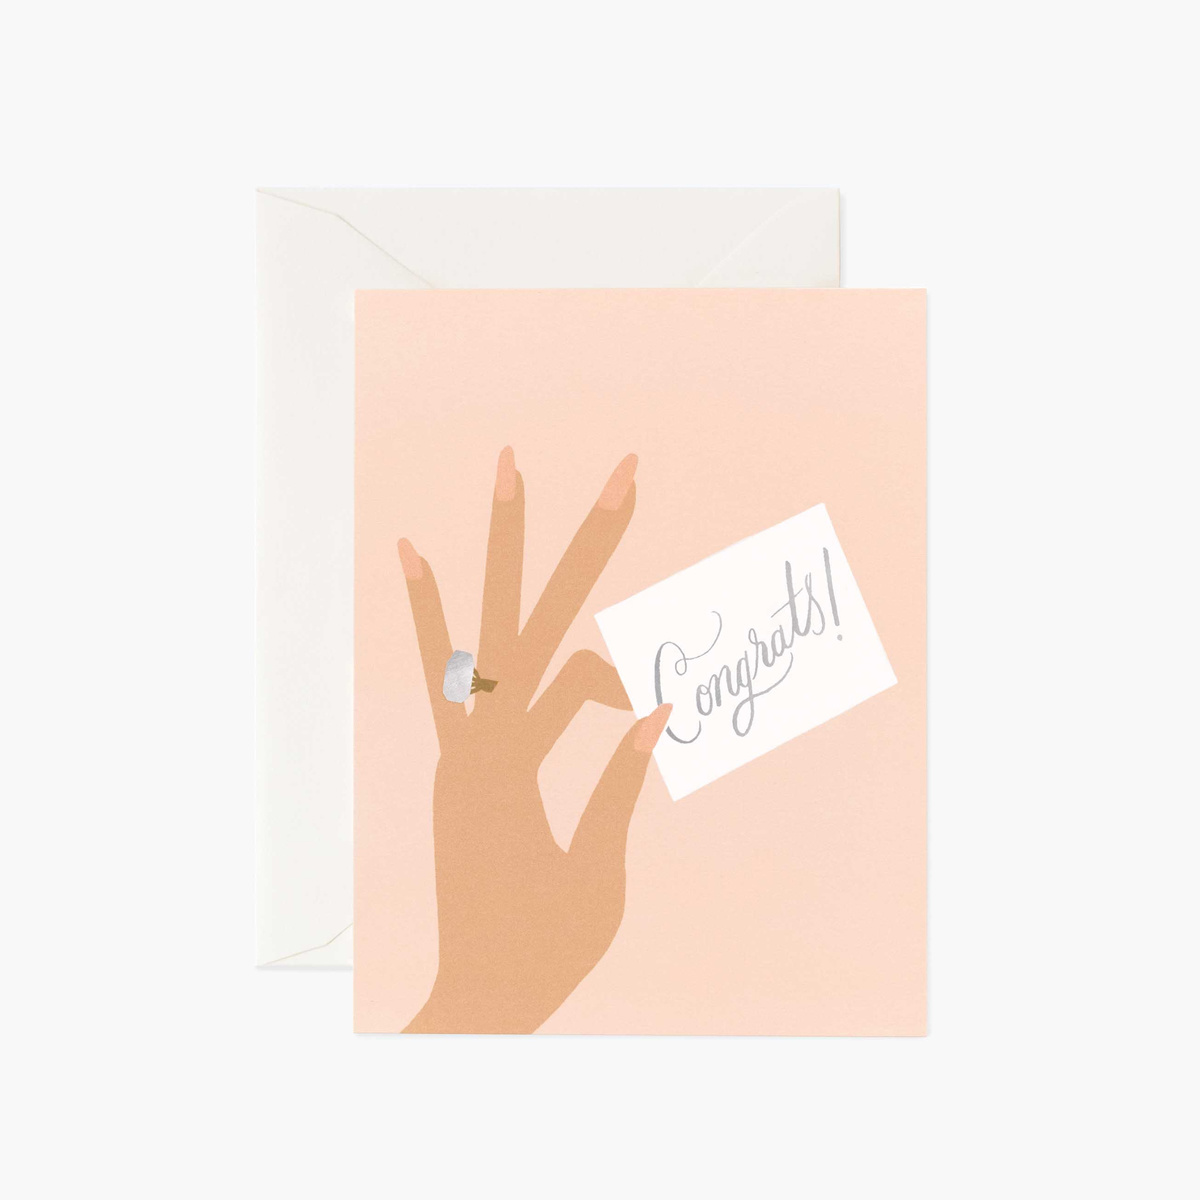 Rifle Paper Co - RP Rifle Paper Co - Congrats Ring (Hand) Card